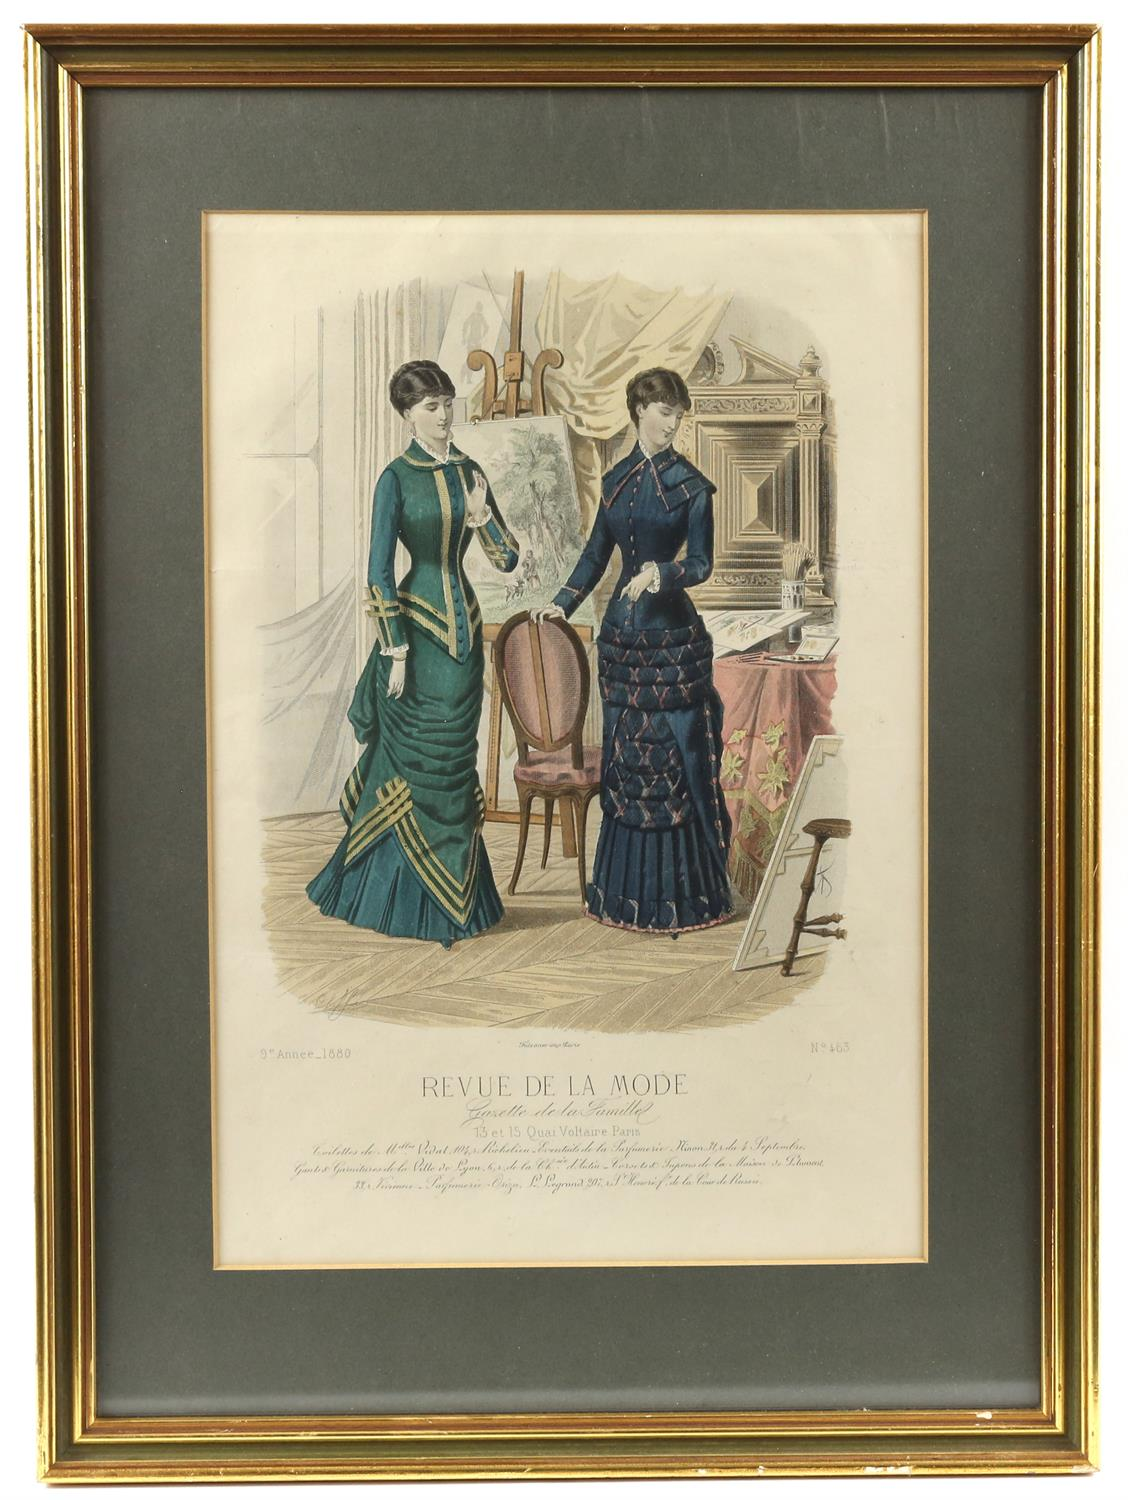 Collection of nineteenth-century French hand-coloured fashion prints, including 'Revue de la mode', - Image 4 of 5